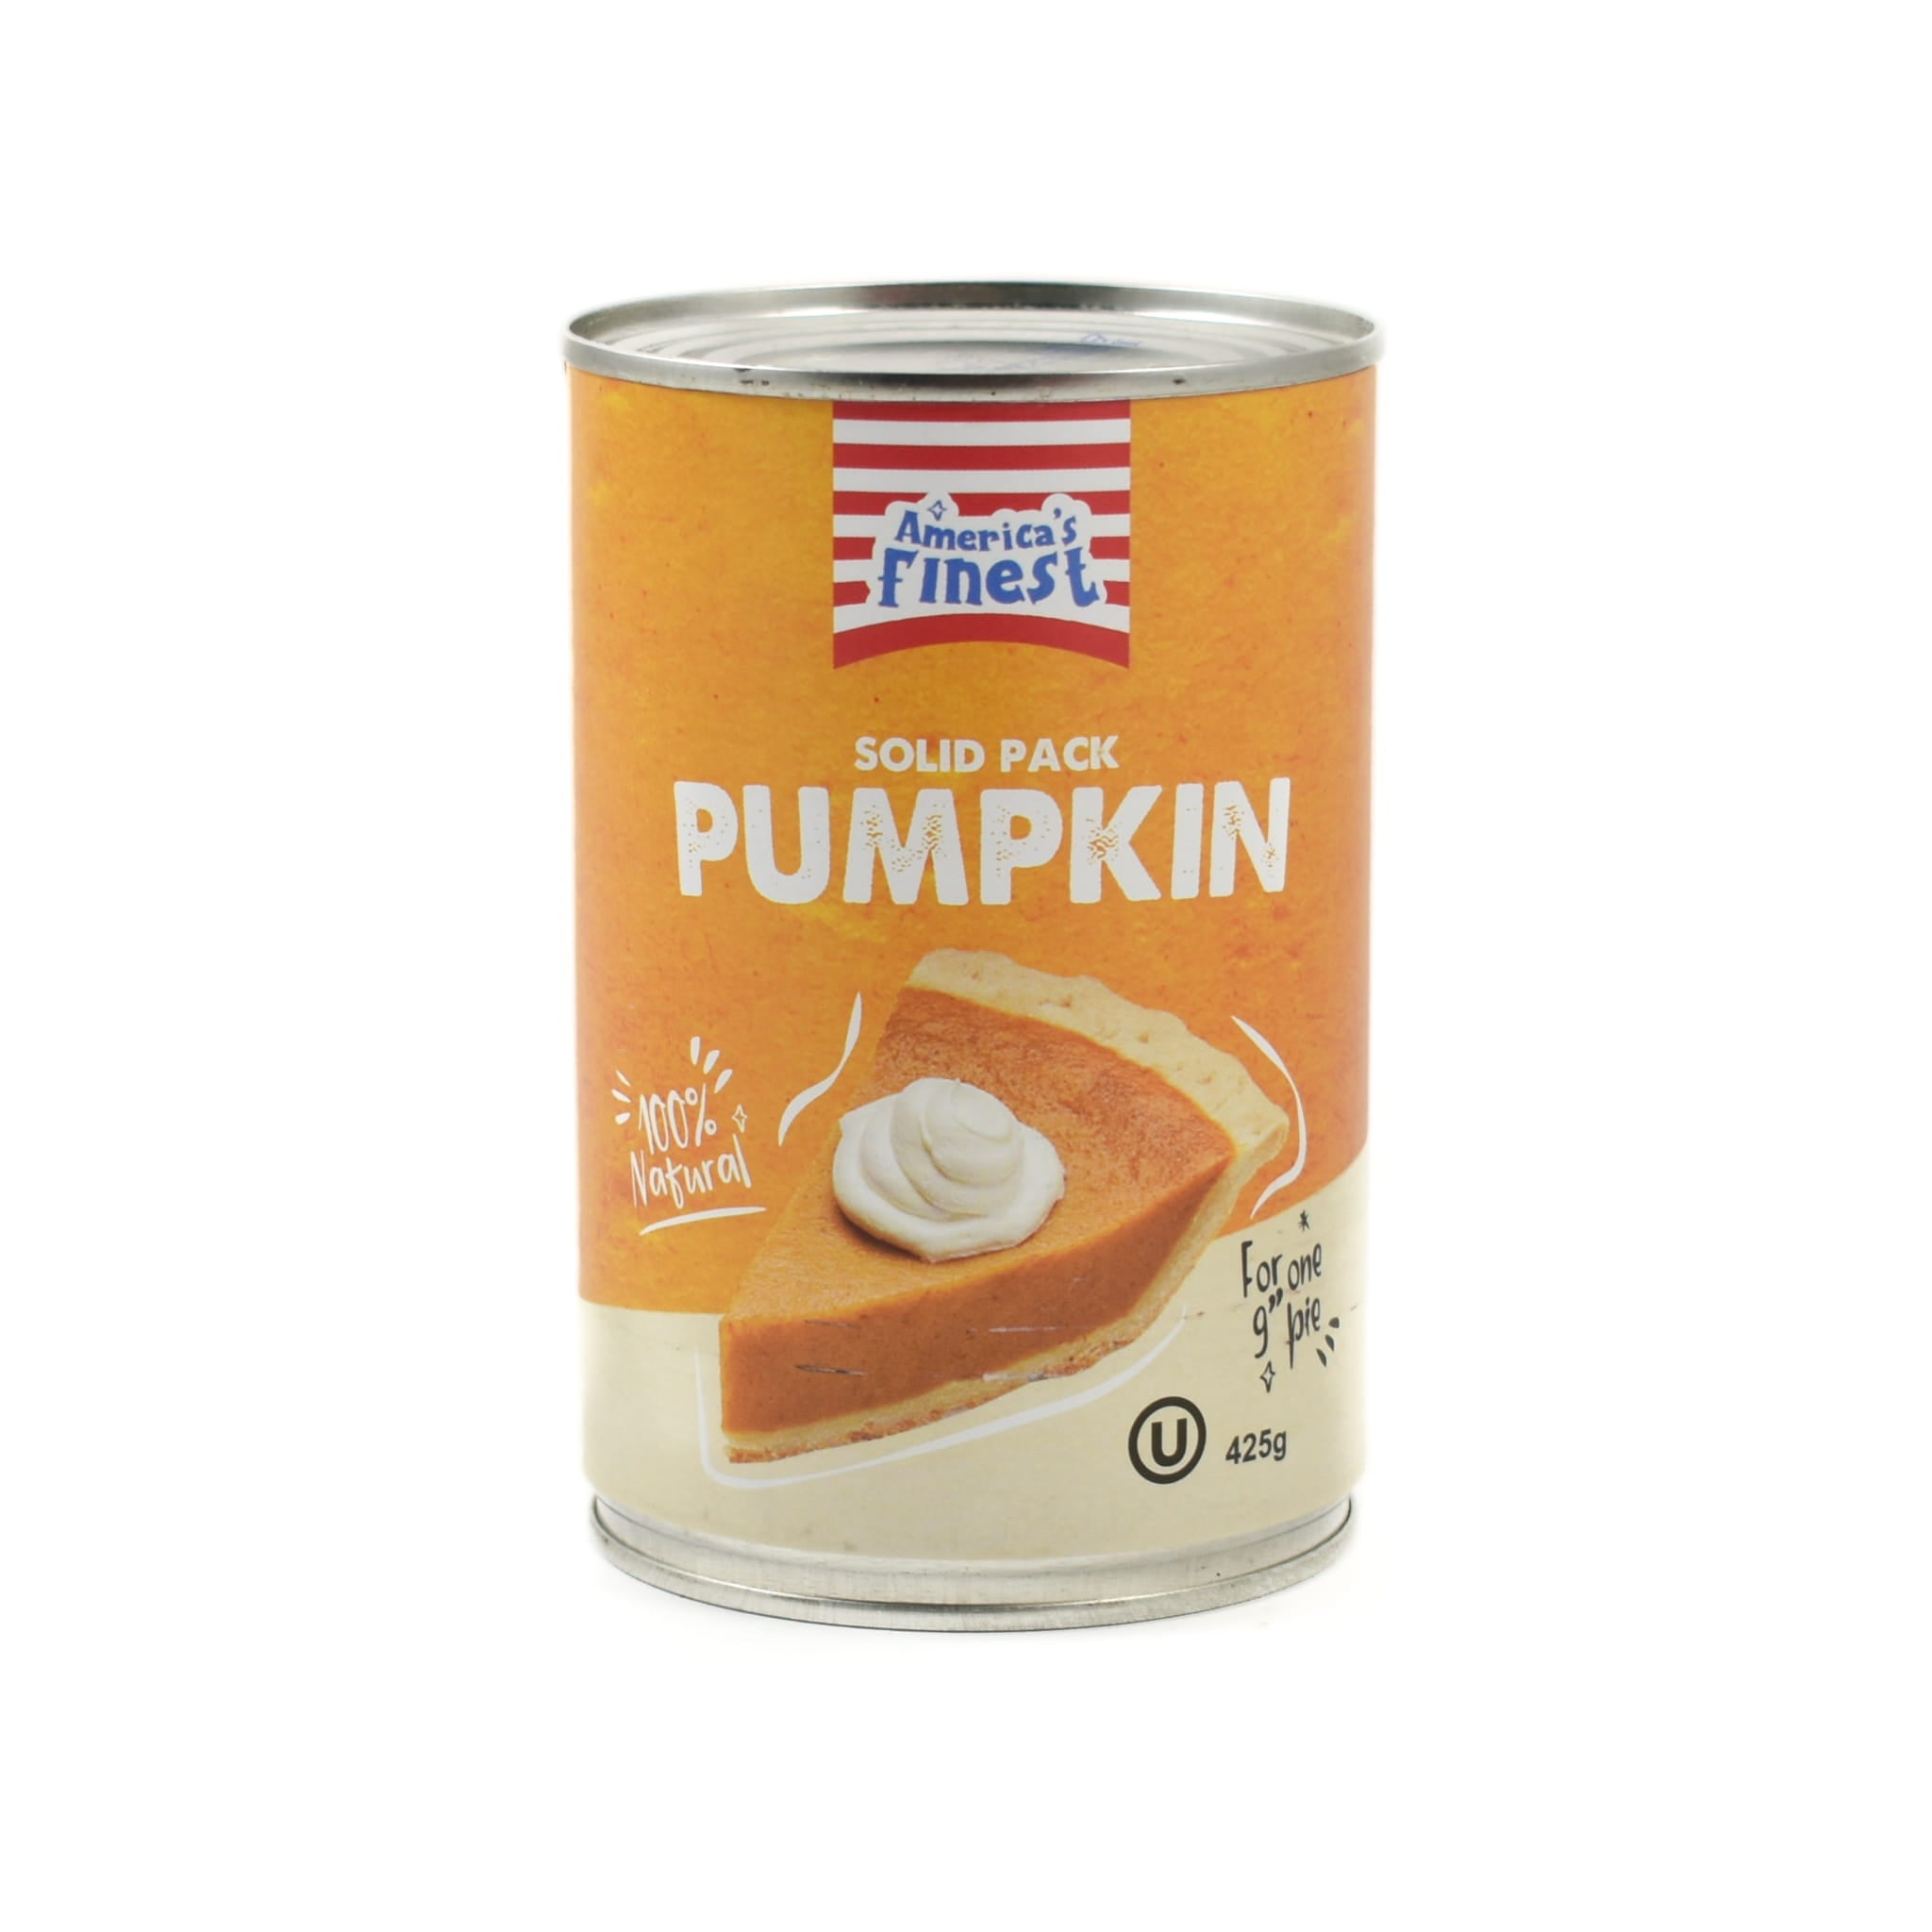 America's Finest Pumpkin Puree 425g